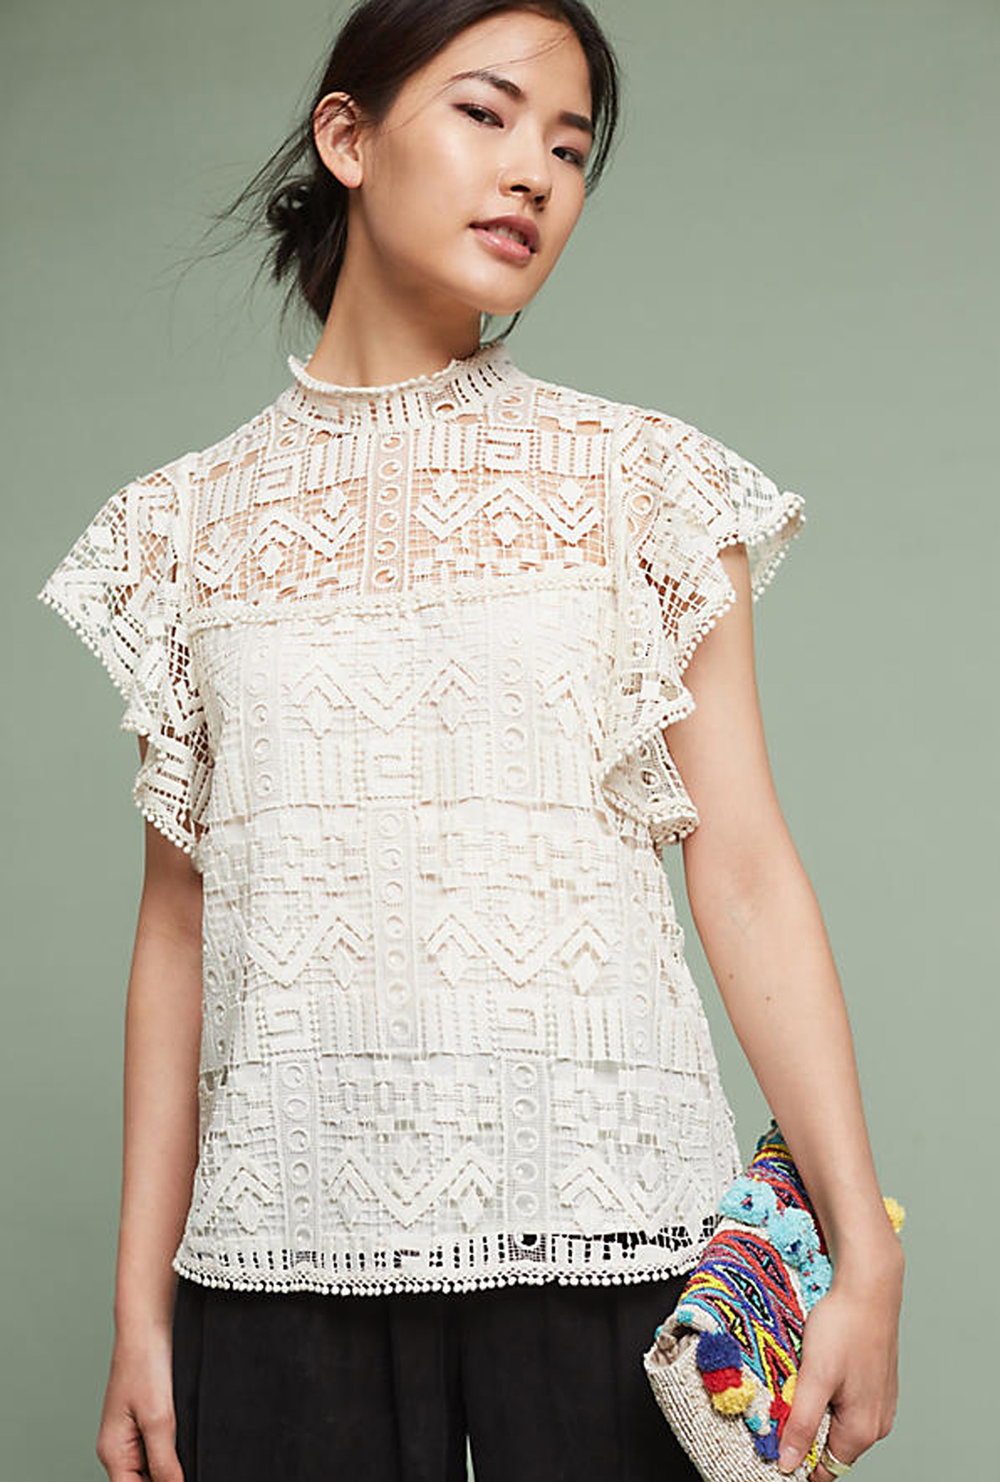 lace top from anthropologie | @themissprints